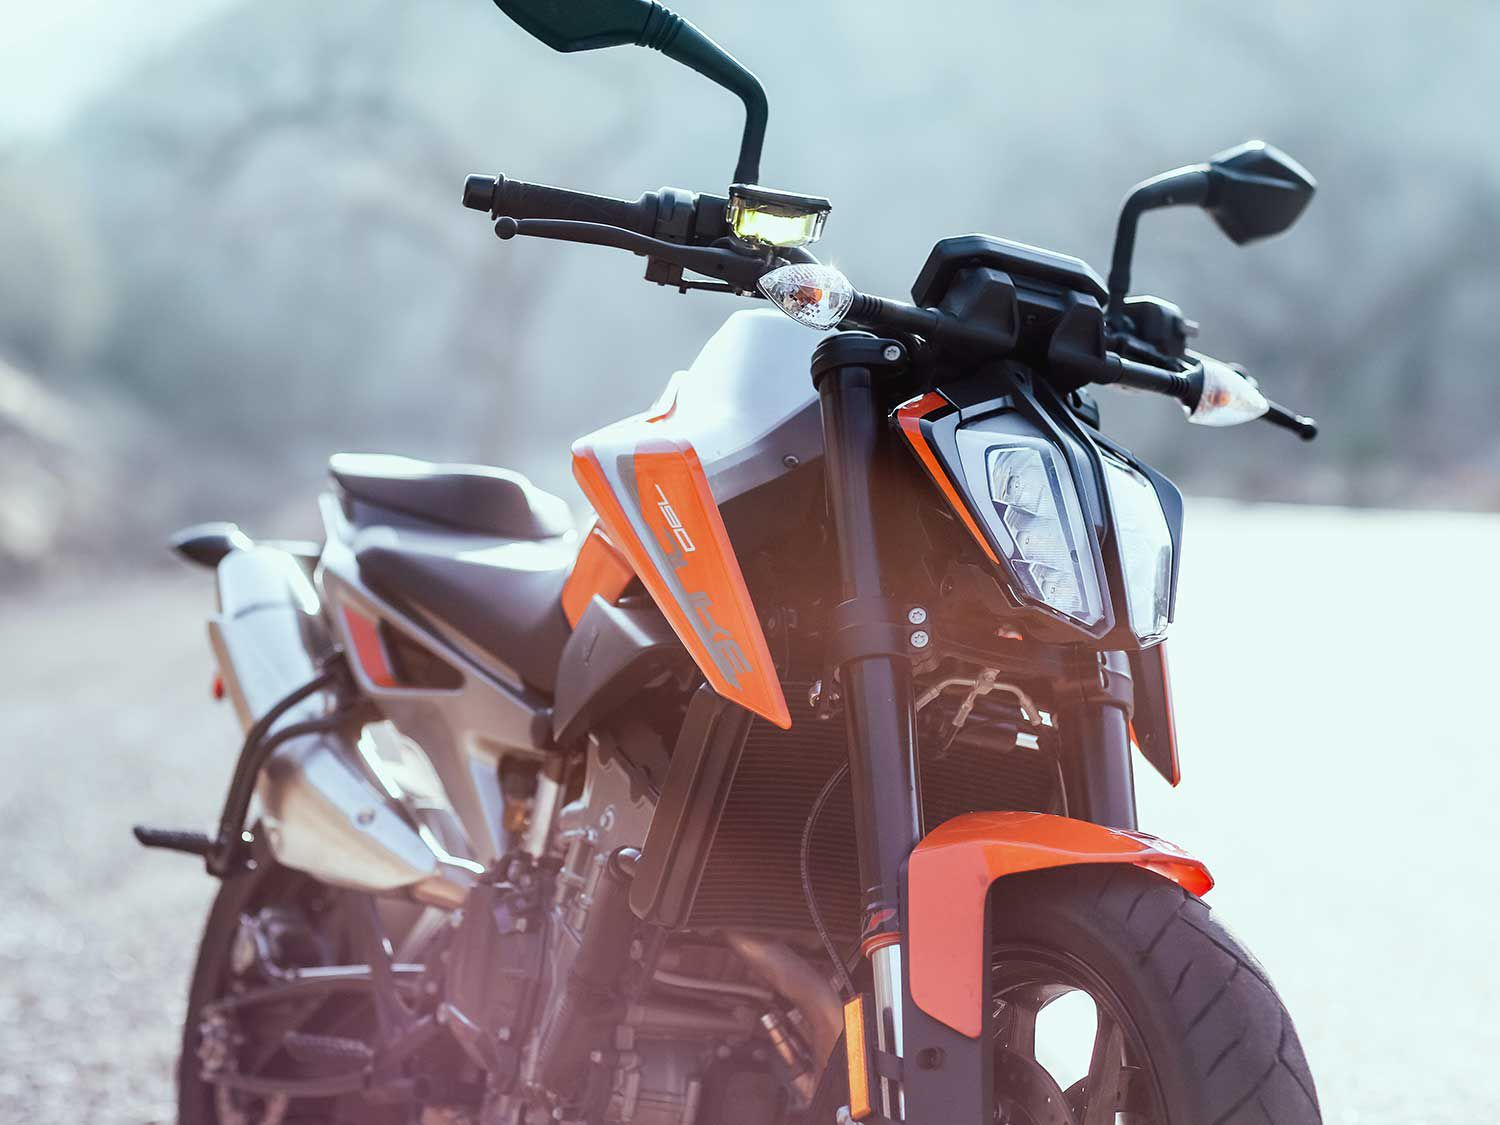 Balanced, sophisticated, and absurdly quick in a canyon, KTM's Duke 790 is easily one of the best middleweight motorcycles on sale today.